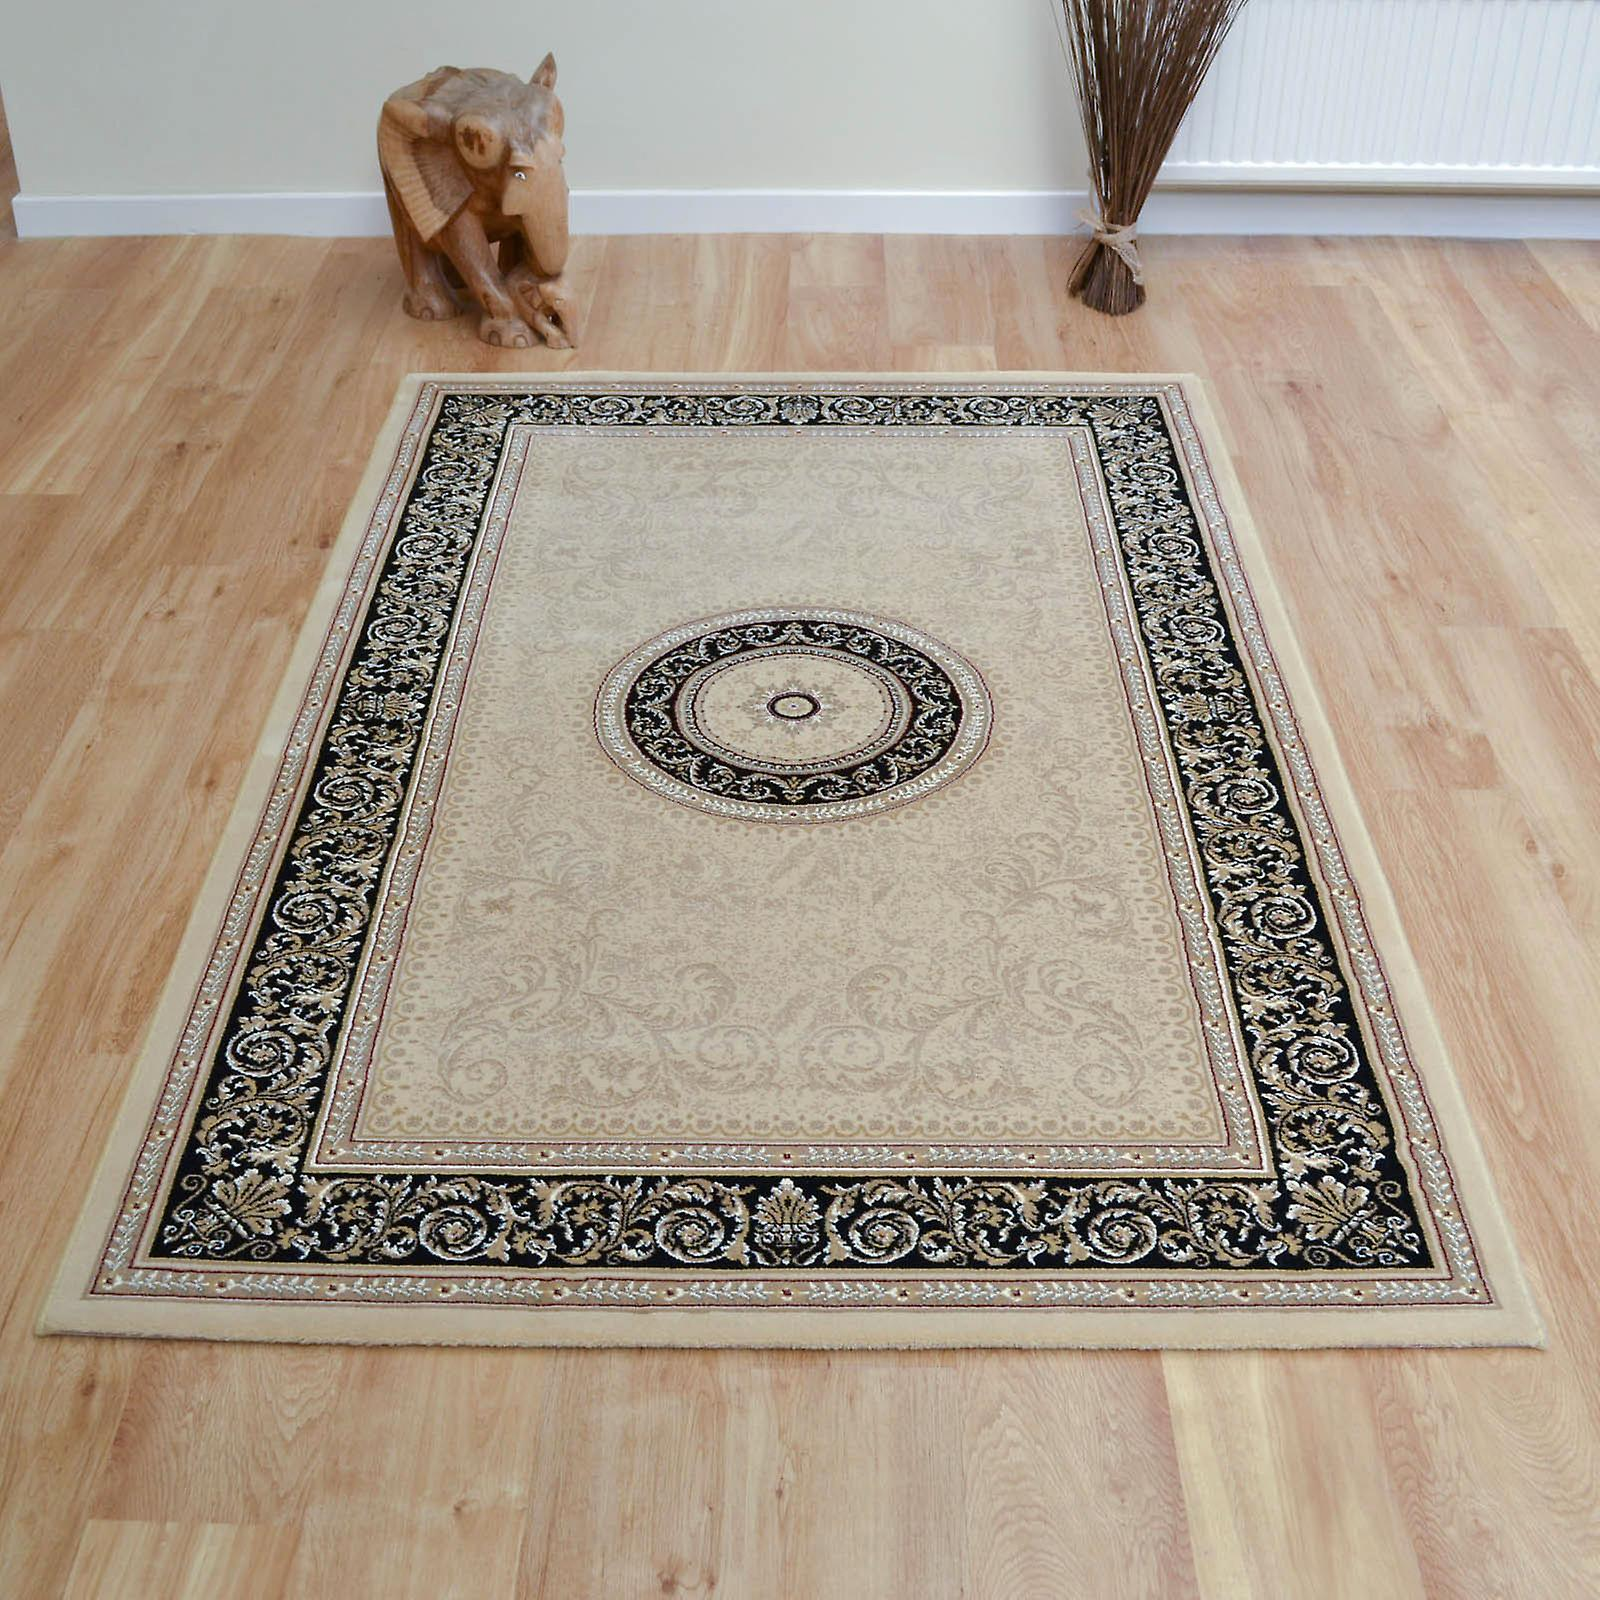 Noble Art Rugs 6572 192 In Cream Black